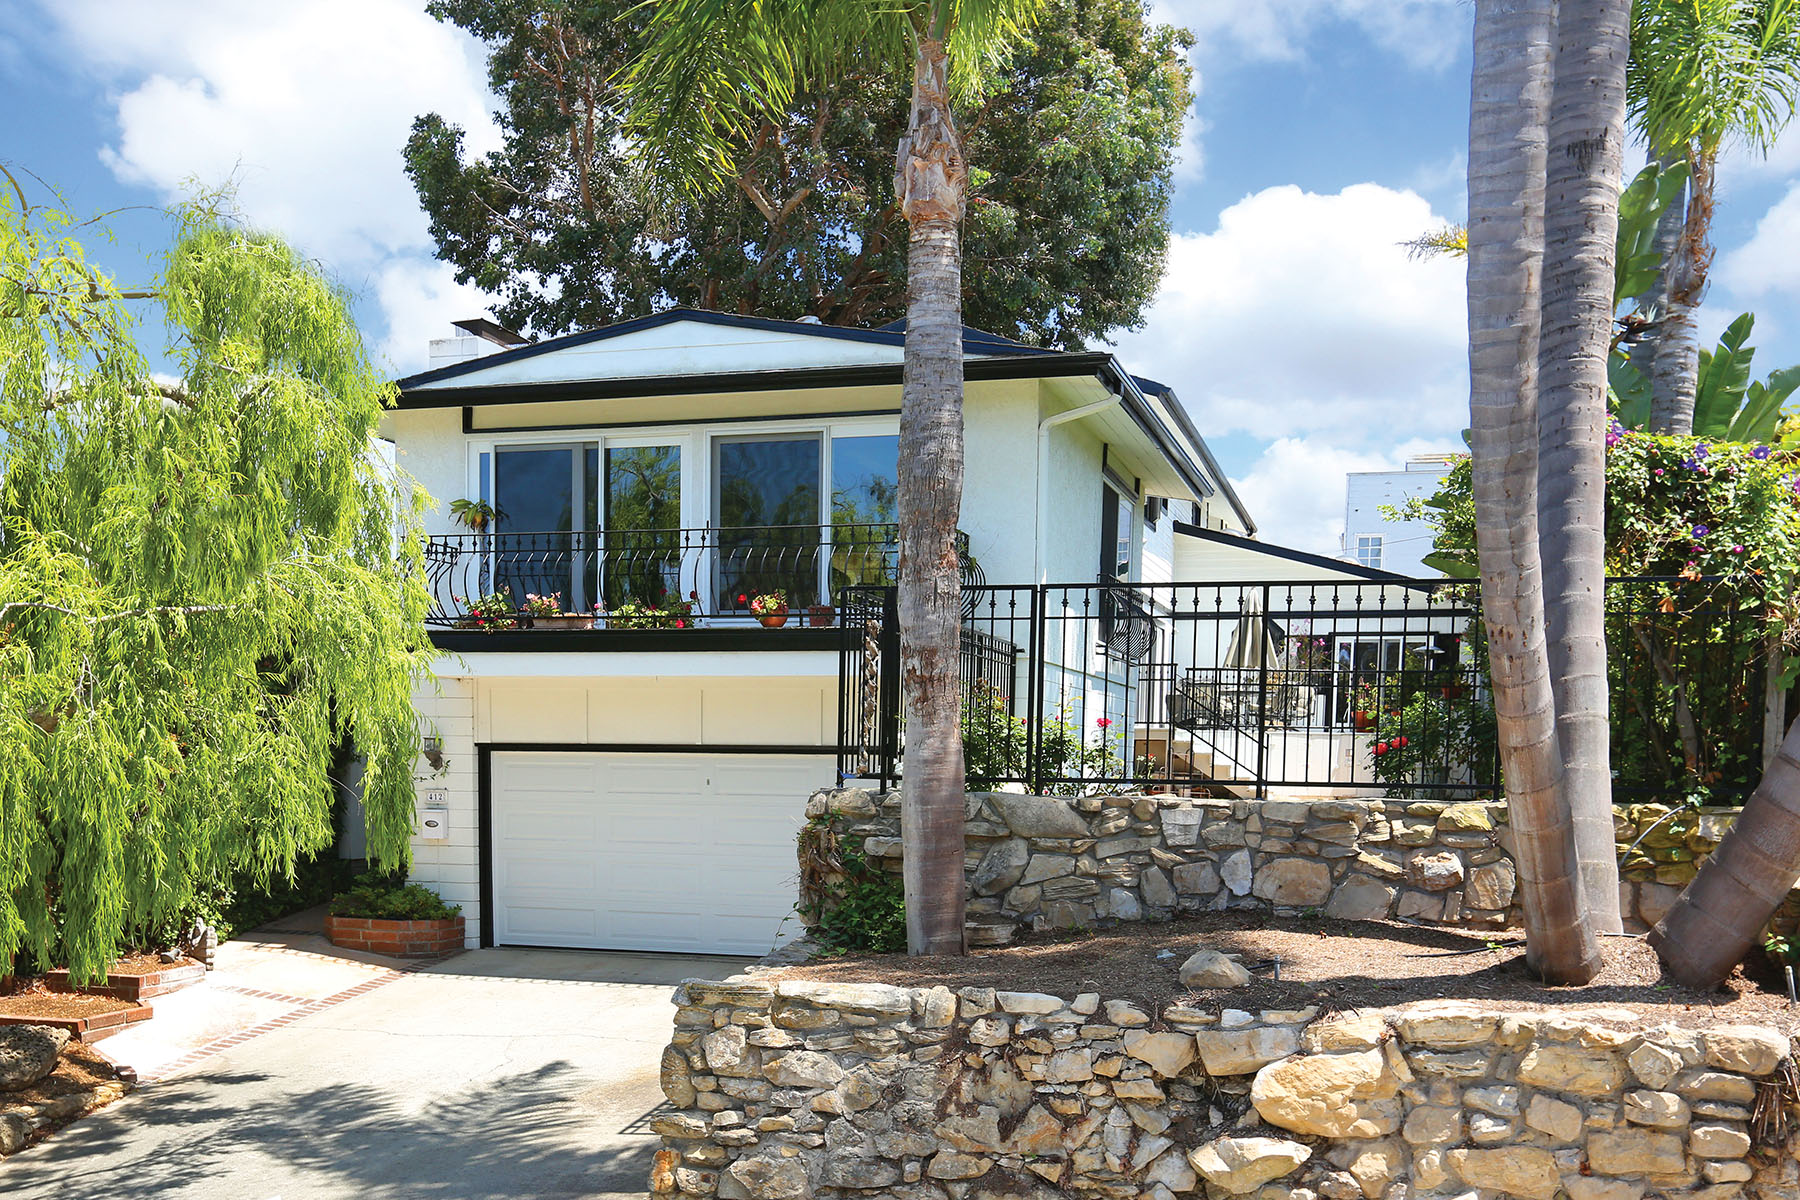 Single Family Home for Sale at 412 Avocado Ave 412 Avocado Aveue Corona Del Mar, California 92625 United States